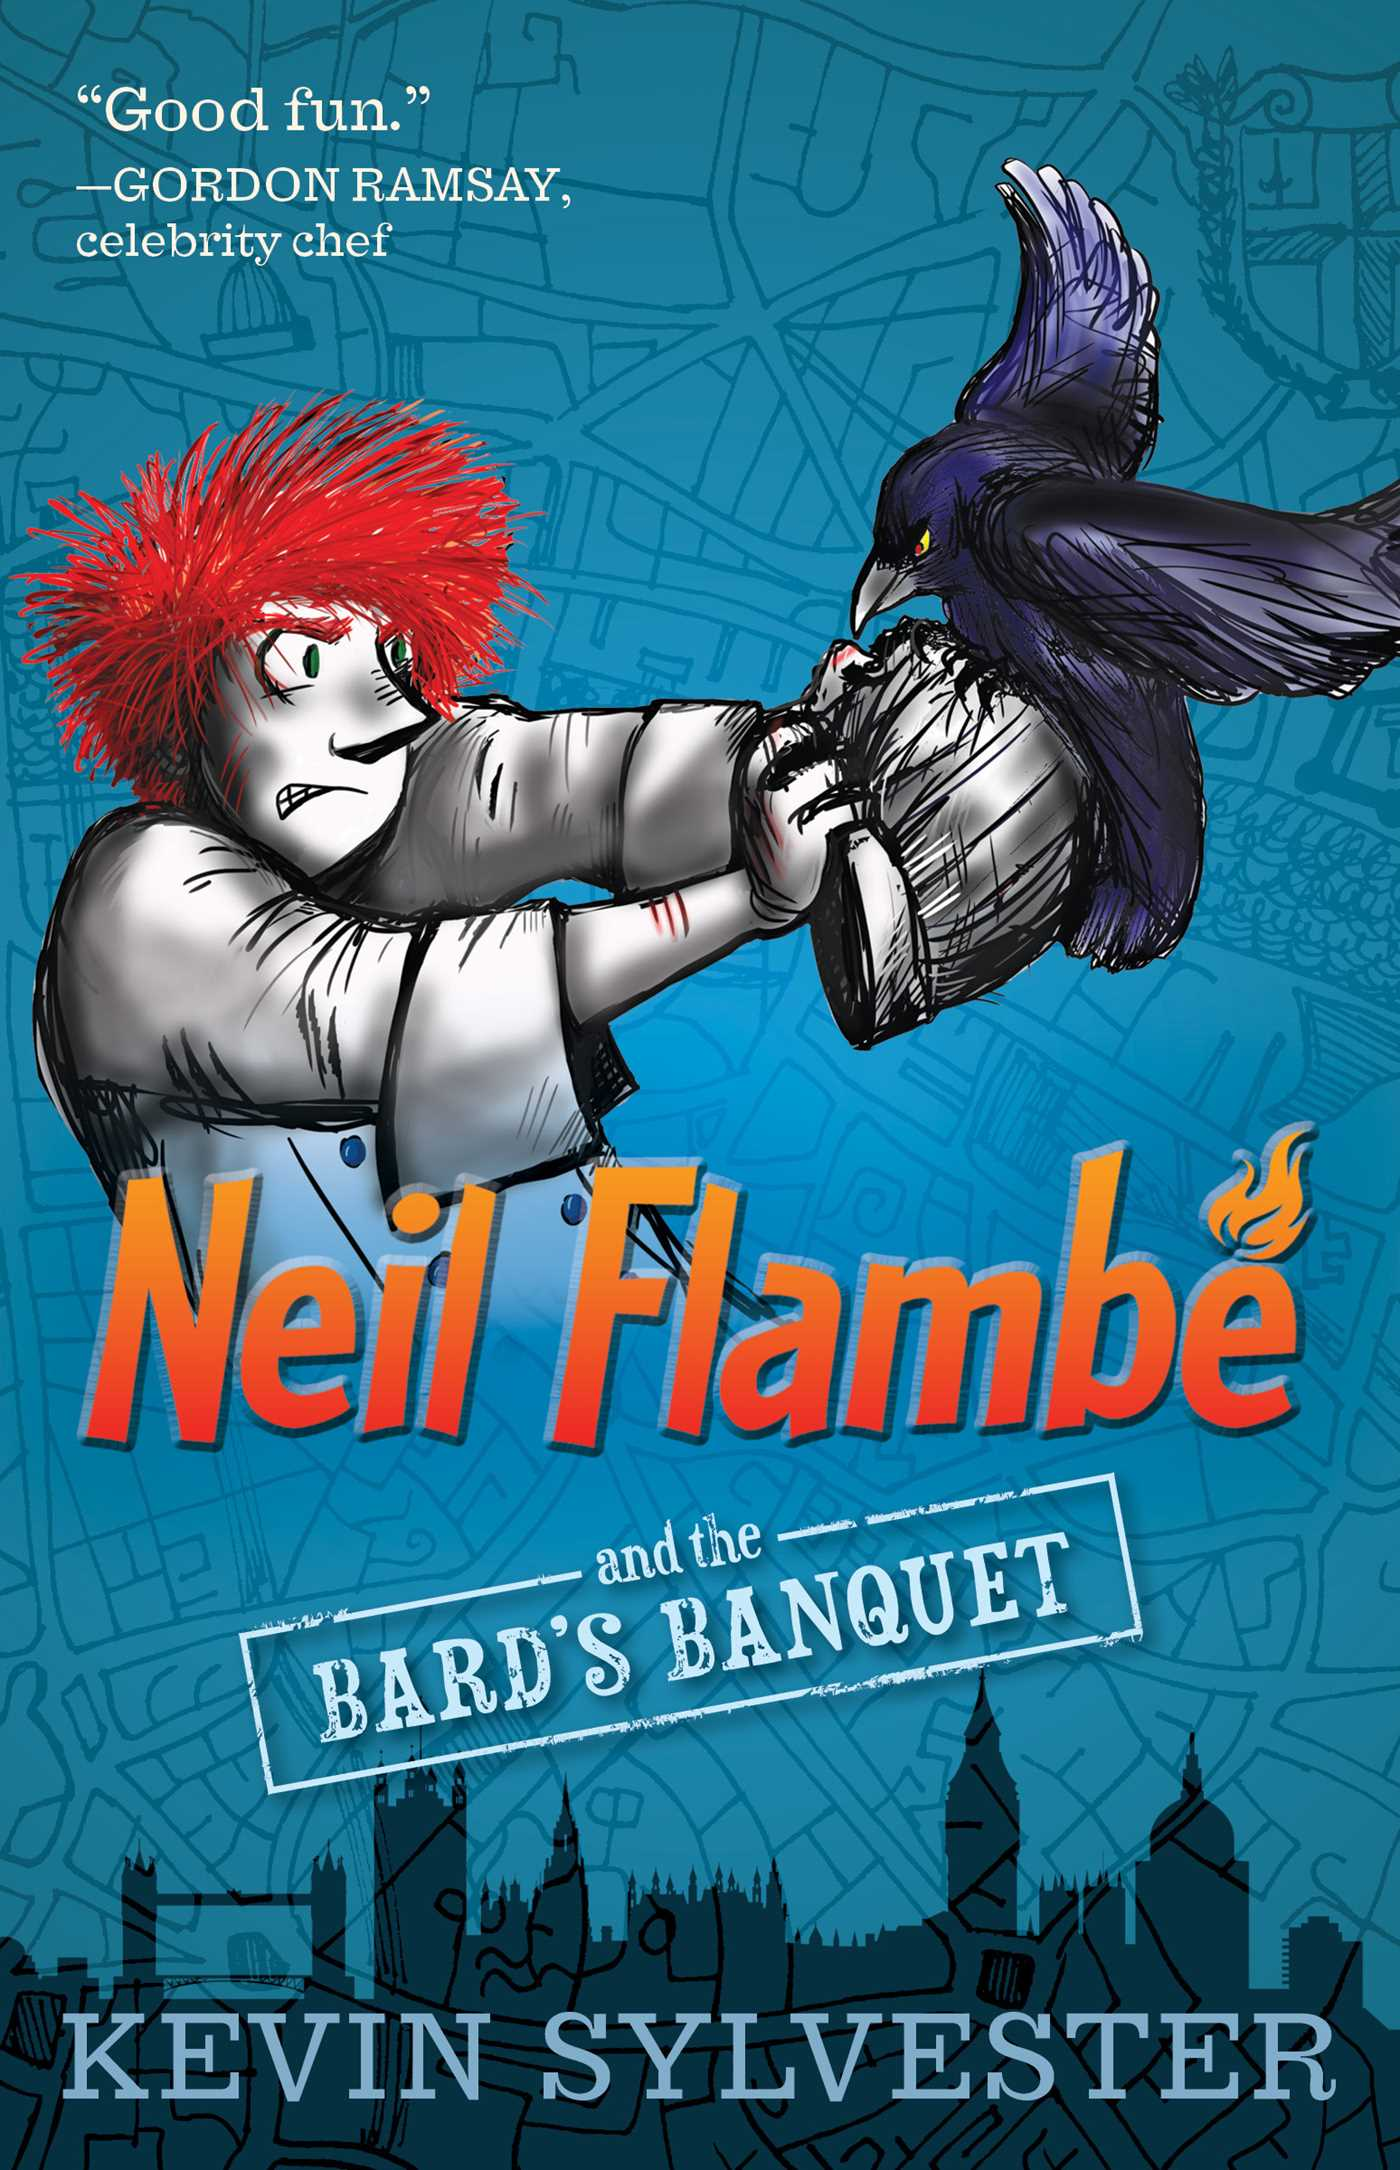 Neil-flambe-and-the-bards-banquet-9781481410380_hr